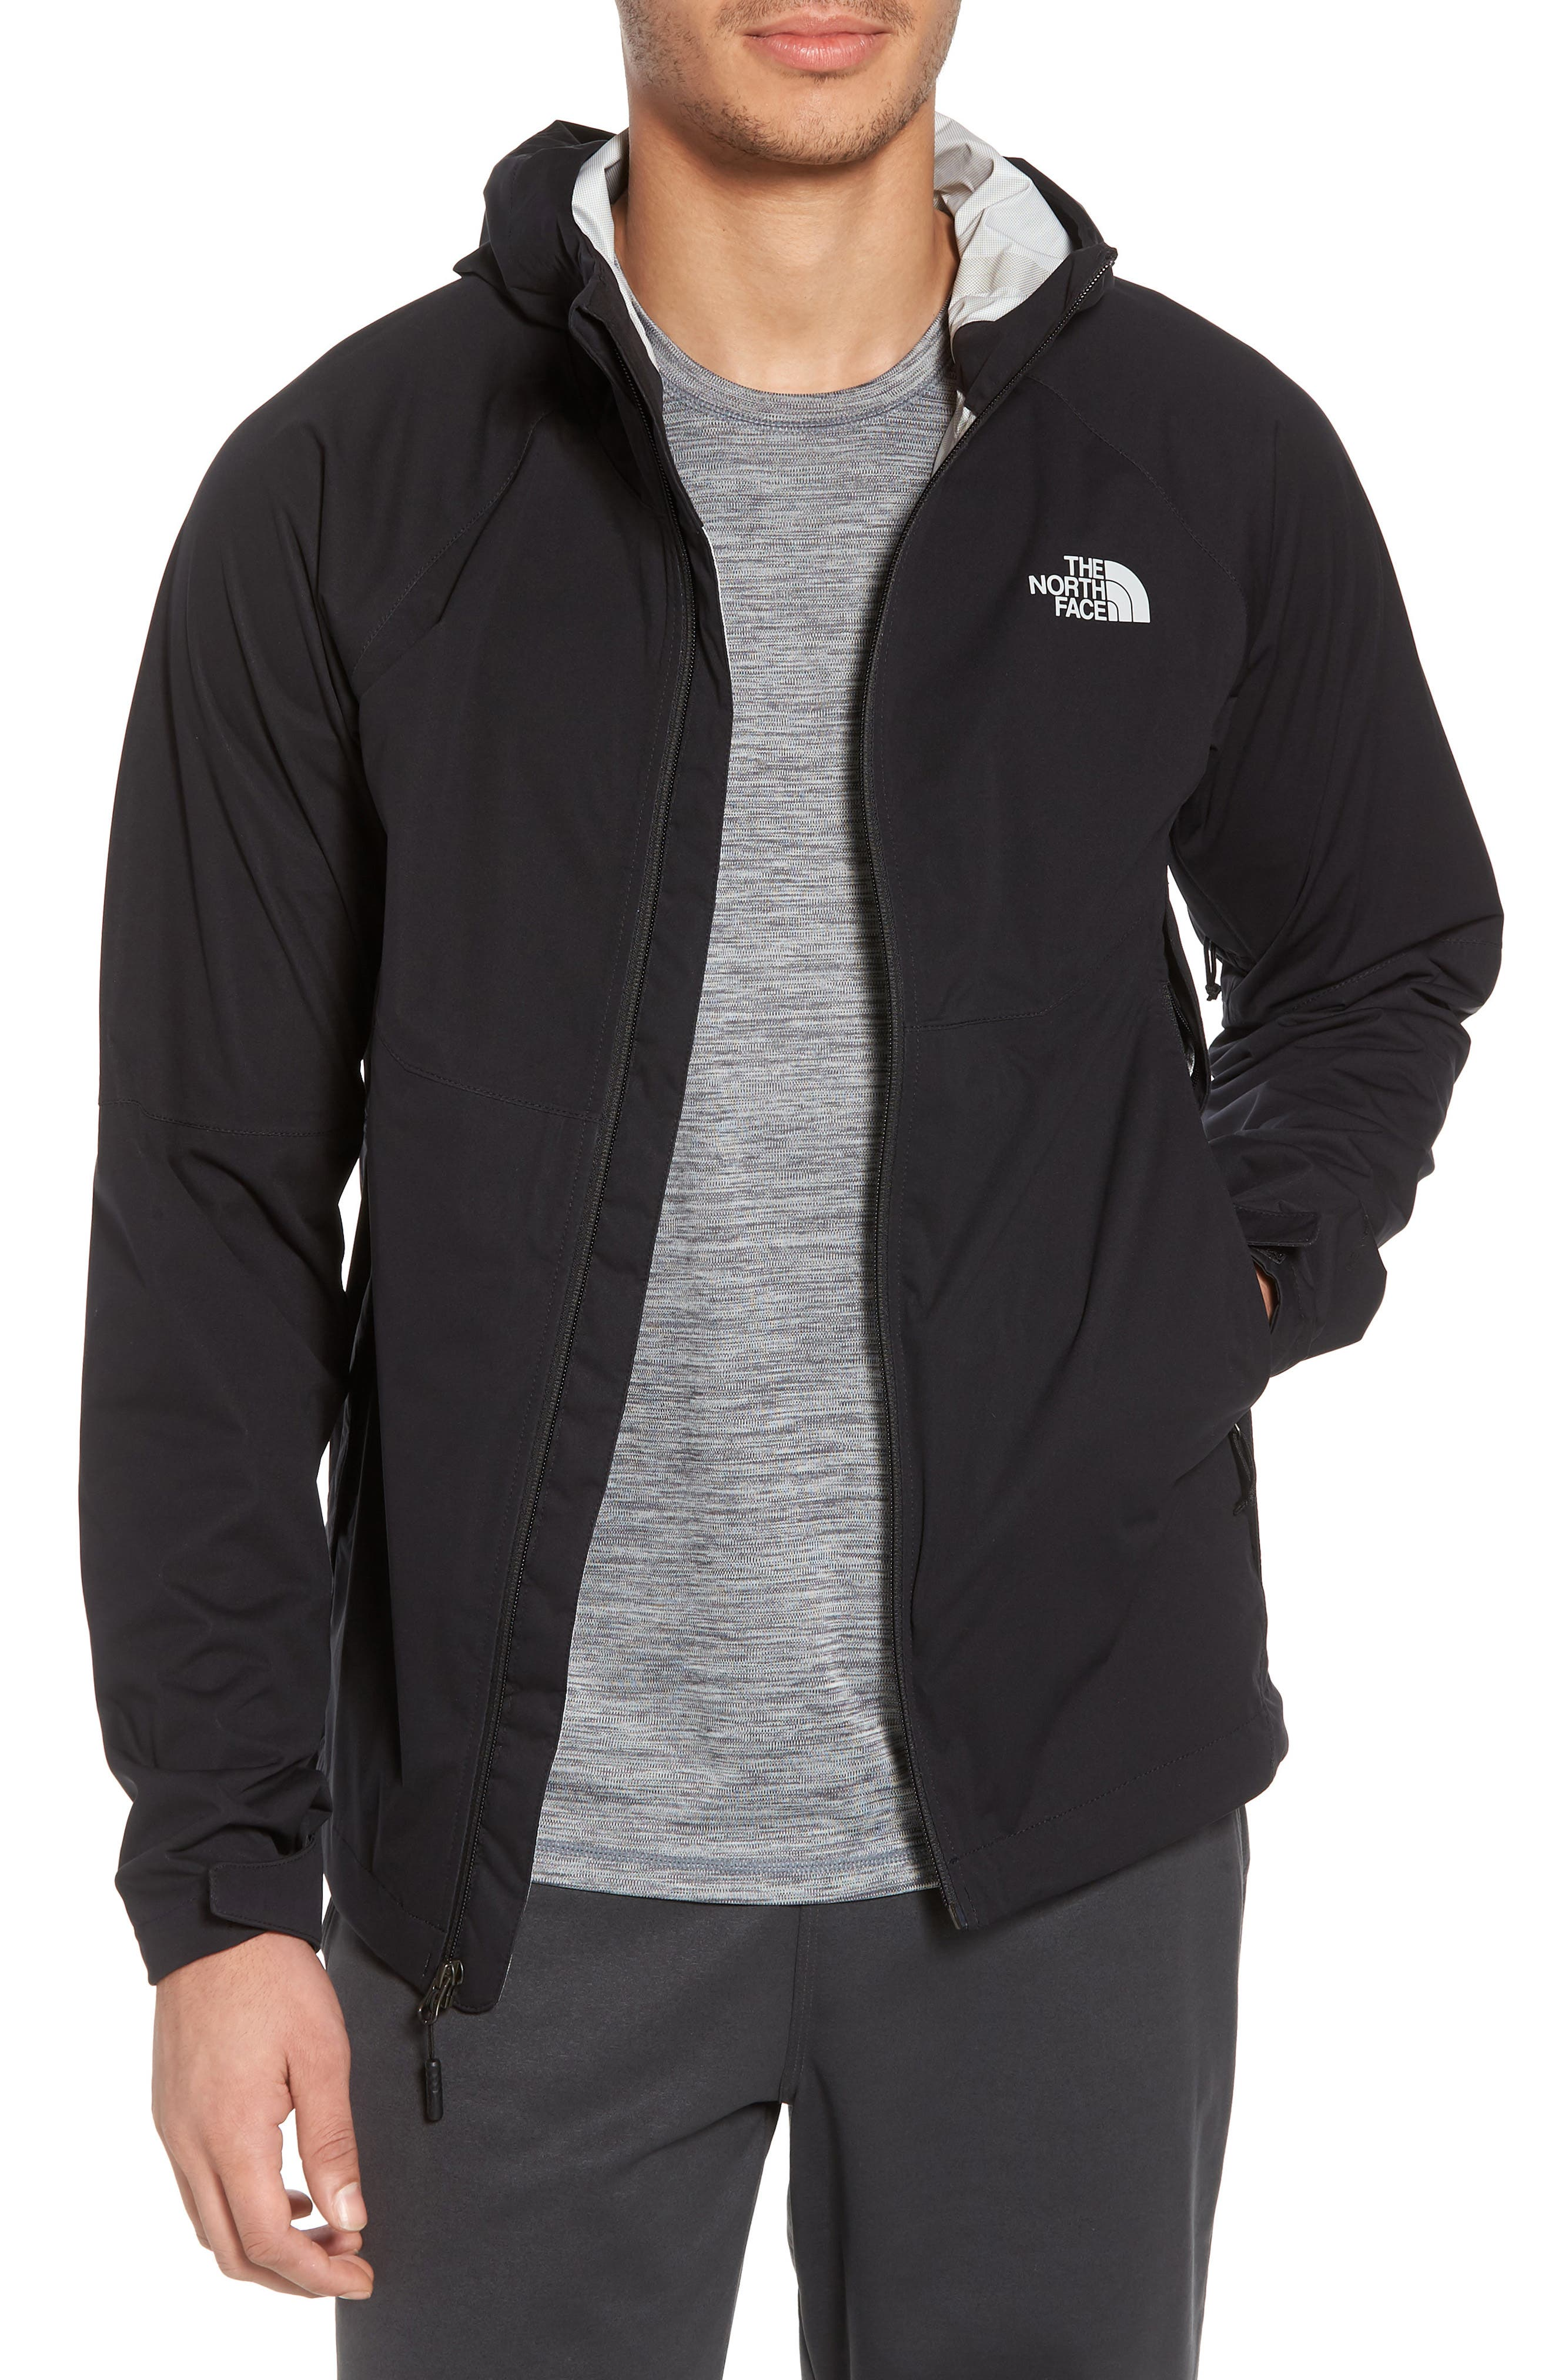 THE NORTH FACE, Allproof Stretch Hooded Rain Jacket, Main thumbnail 1, color, 001